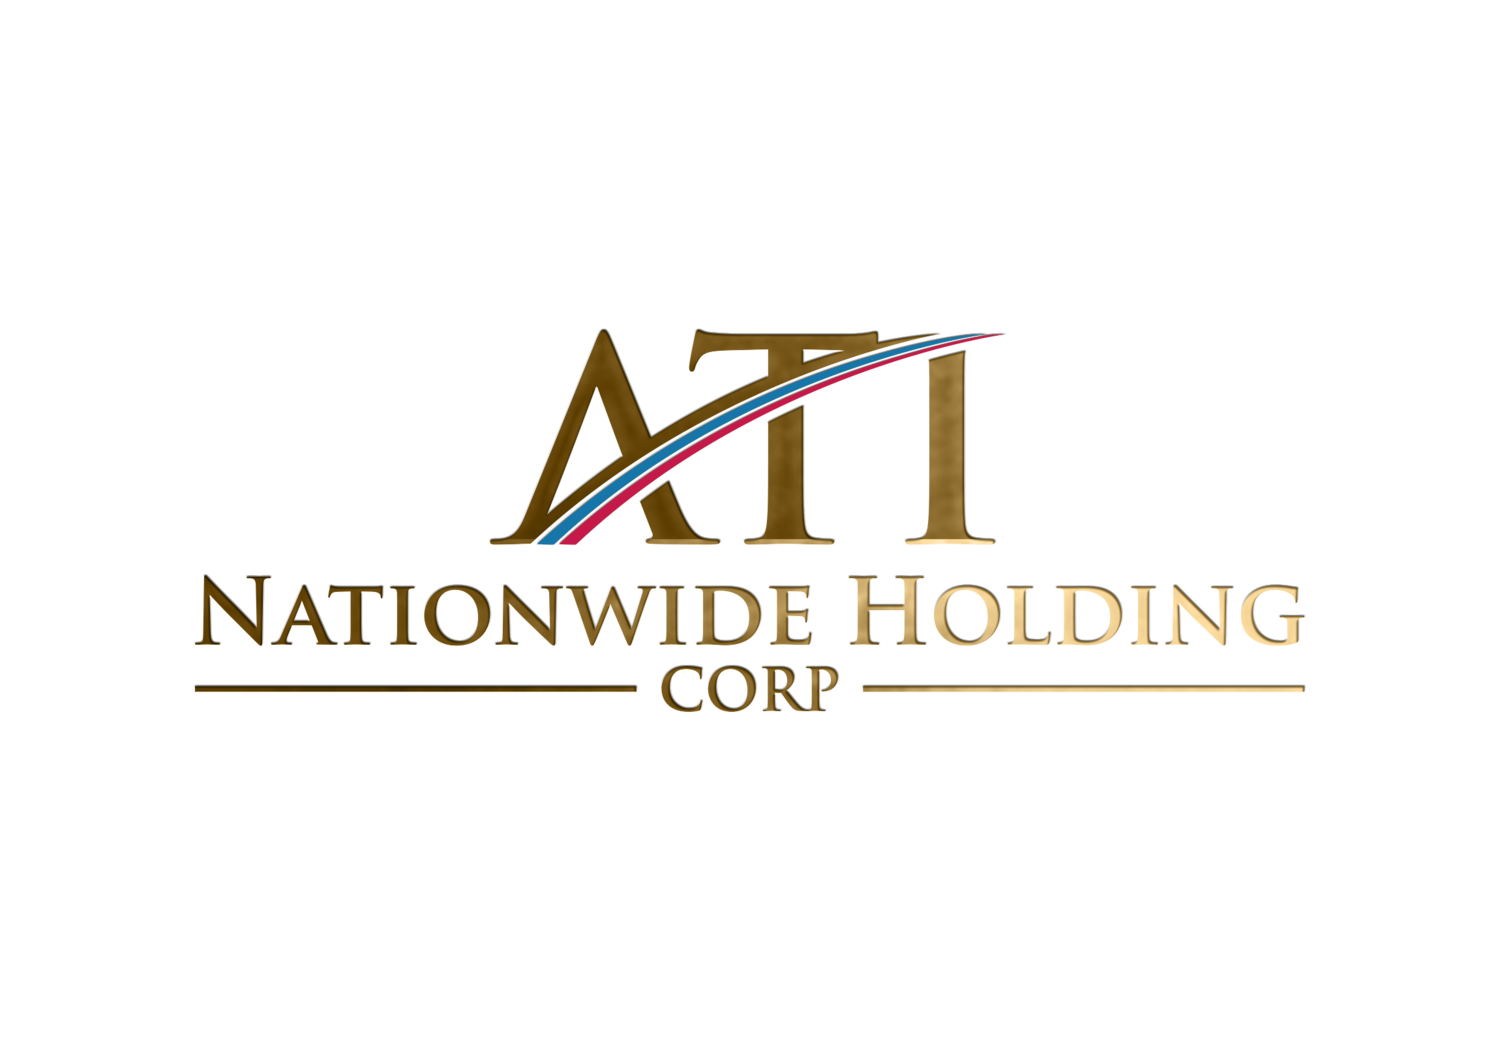 ATI Nationwide Holding Corp